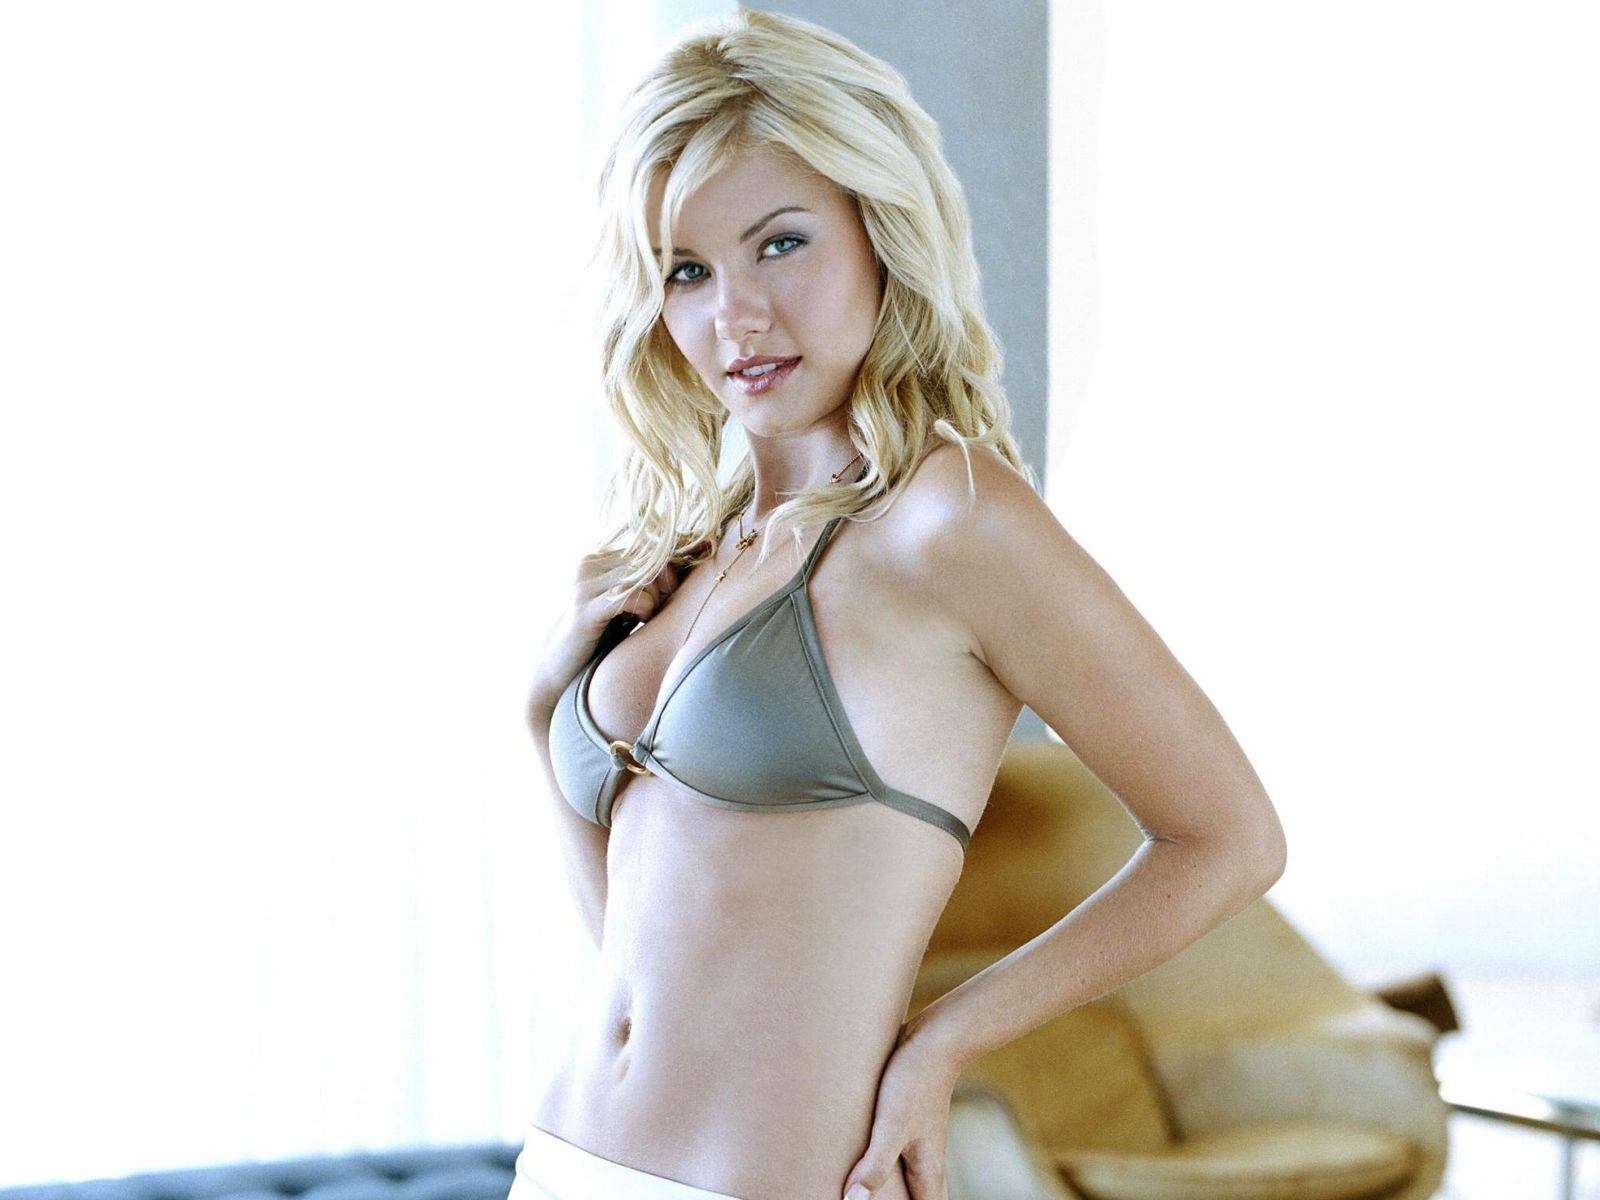 Elisha Cuthbert Hot HD Wallpaper | Download HD Wallpapers Photos